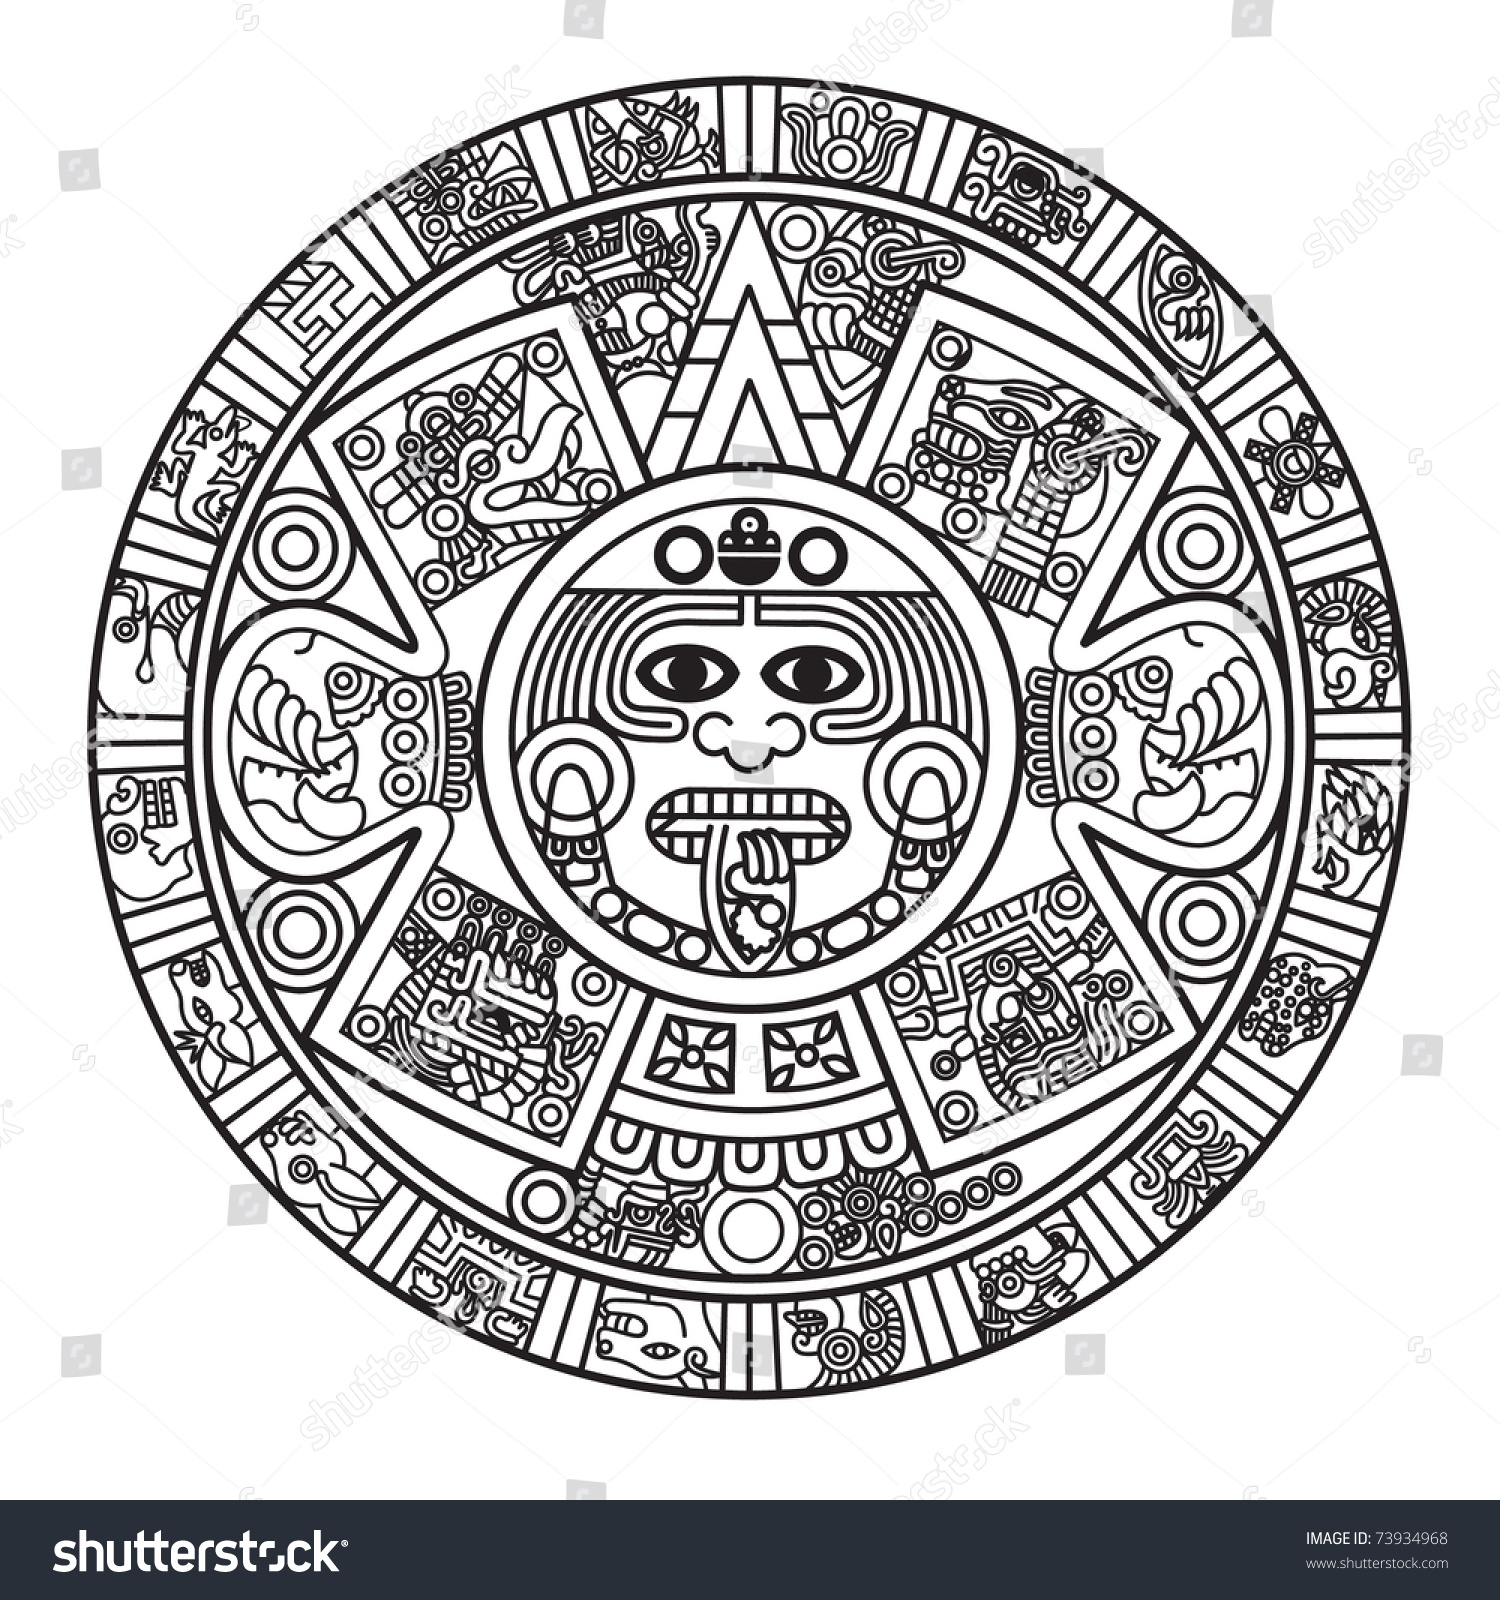 Stylized Aztec Calendar Raster Version Stock Illustration pertaining to Aztec Calendar Template